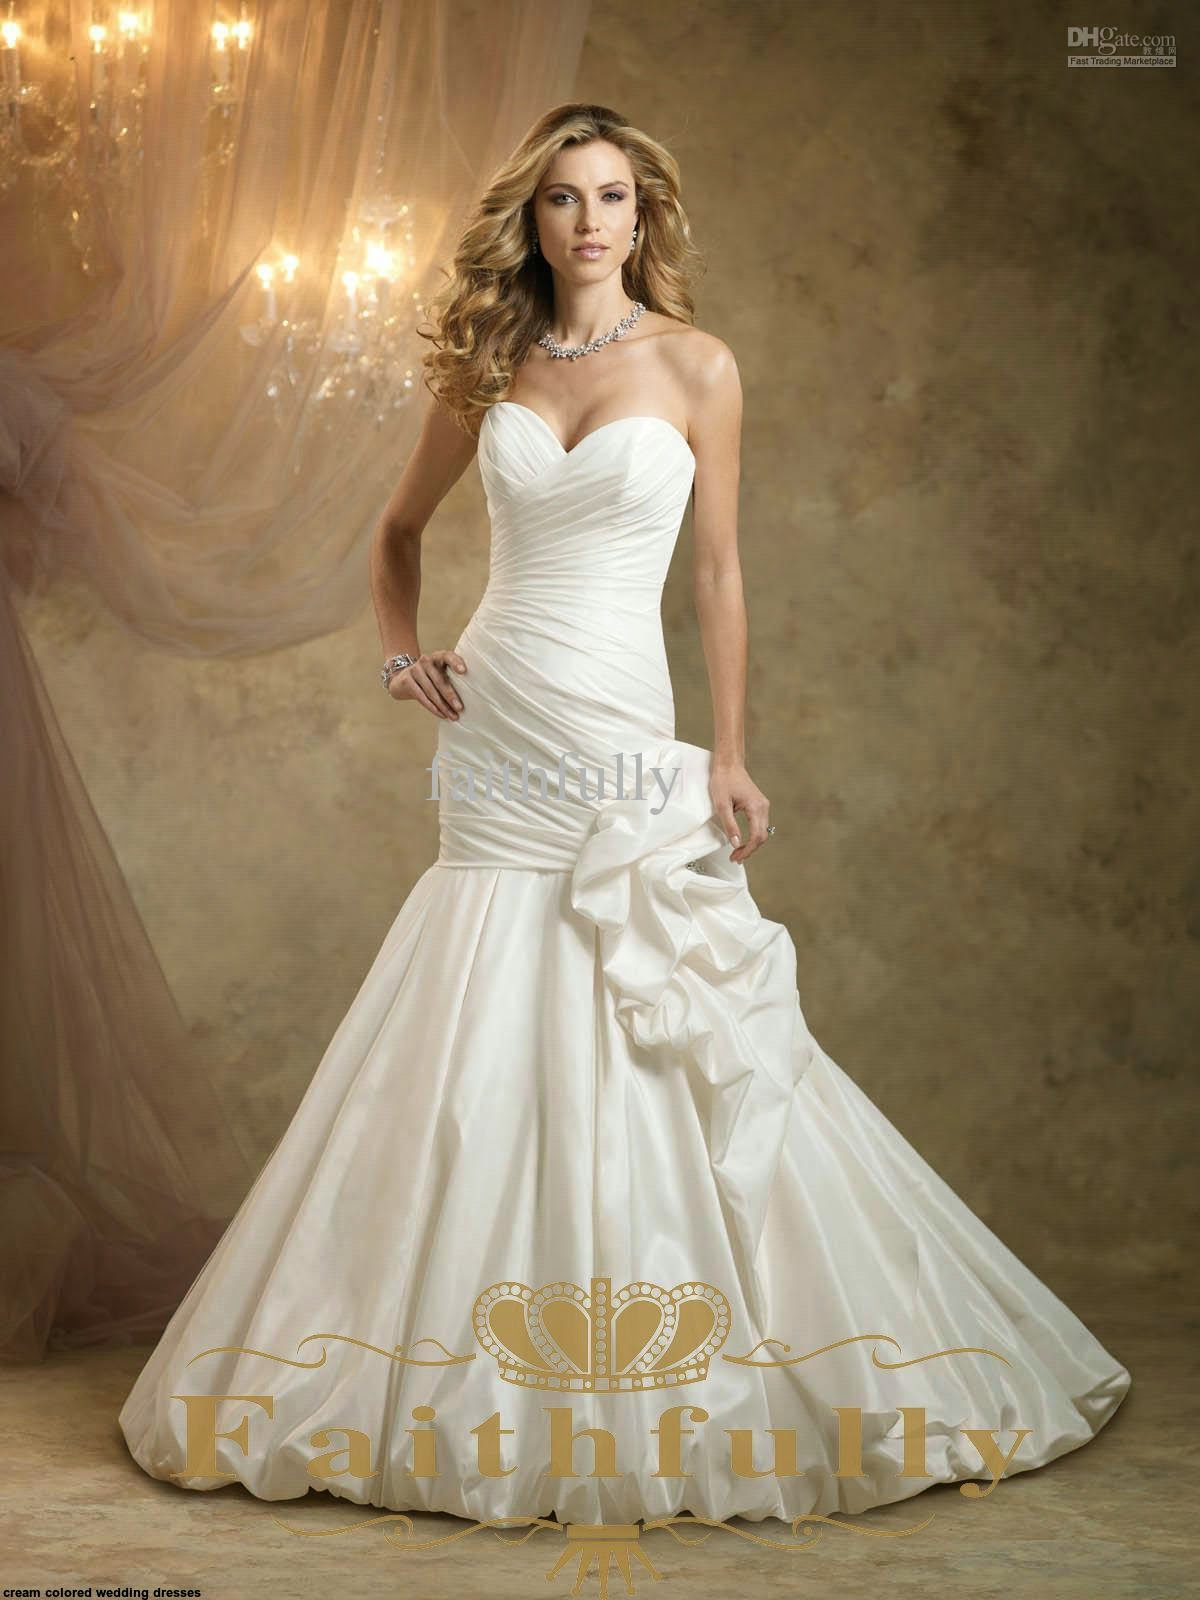 Tips for cream colored wedding dresses wedding dresses for Wedding dresses for bridesmaid